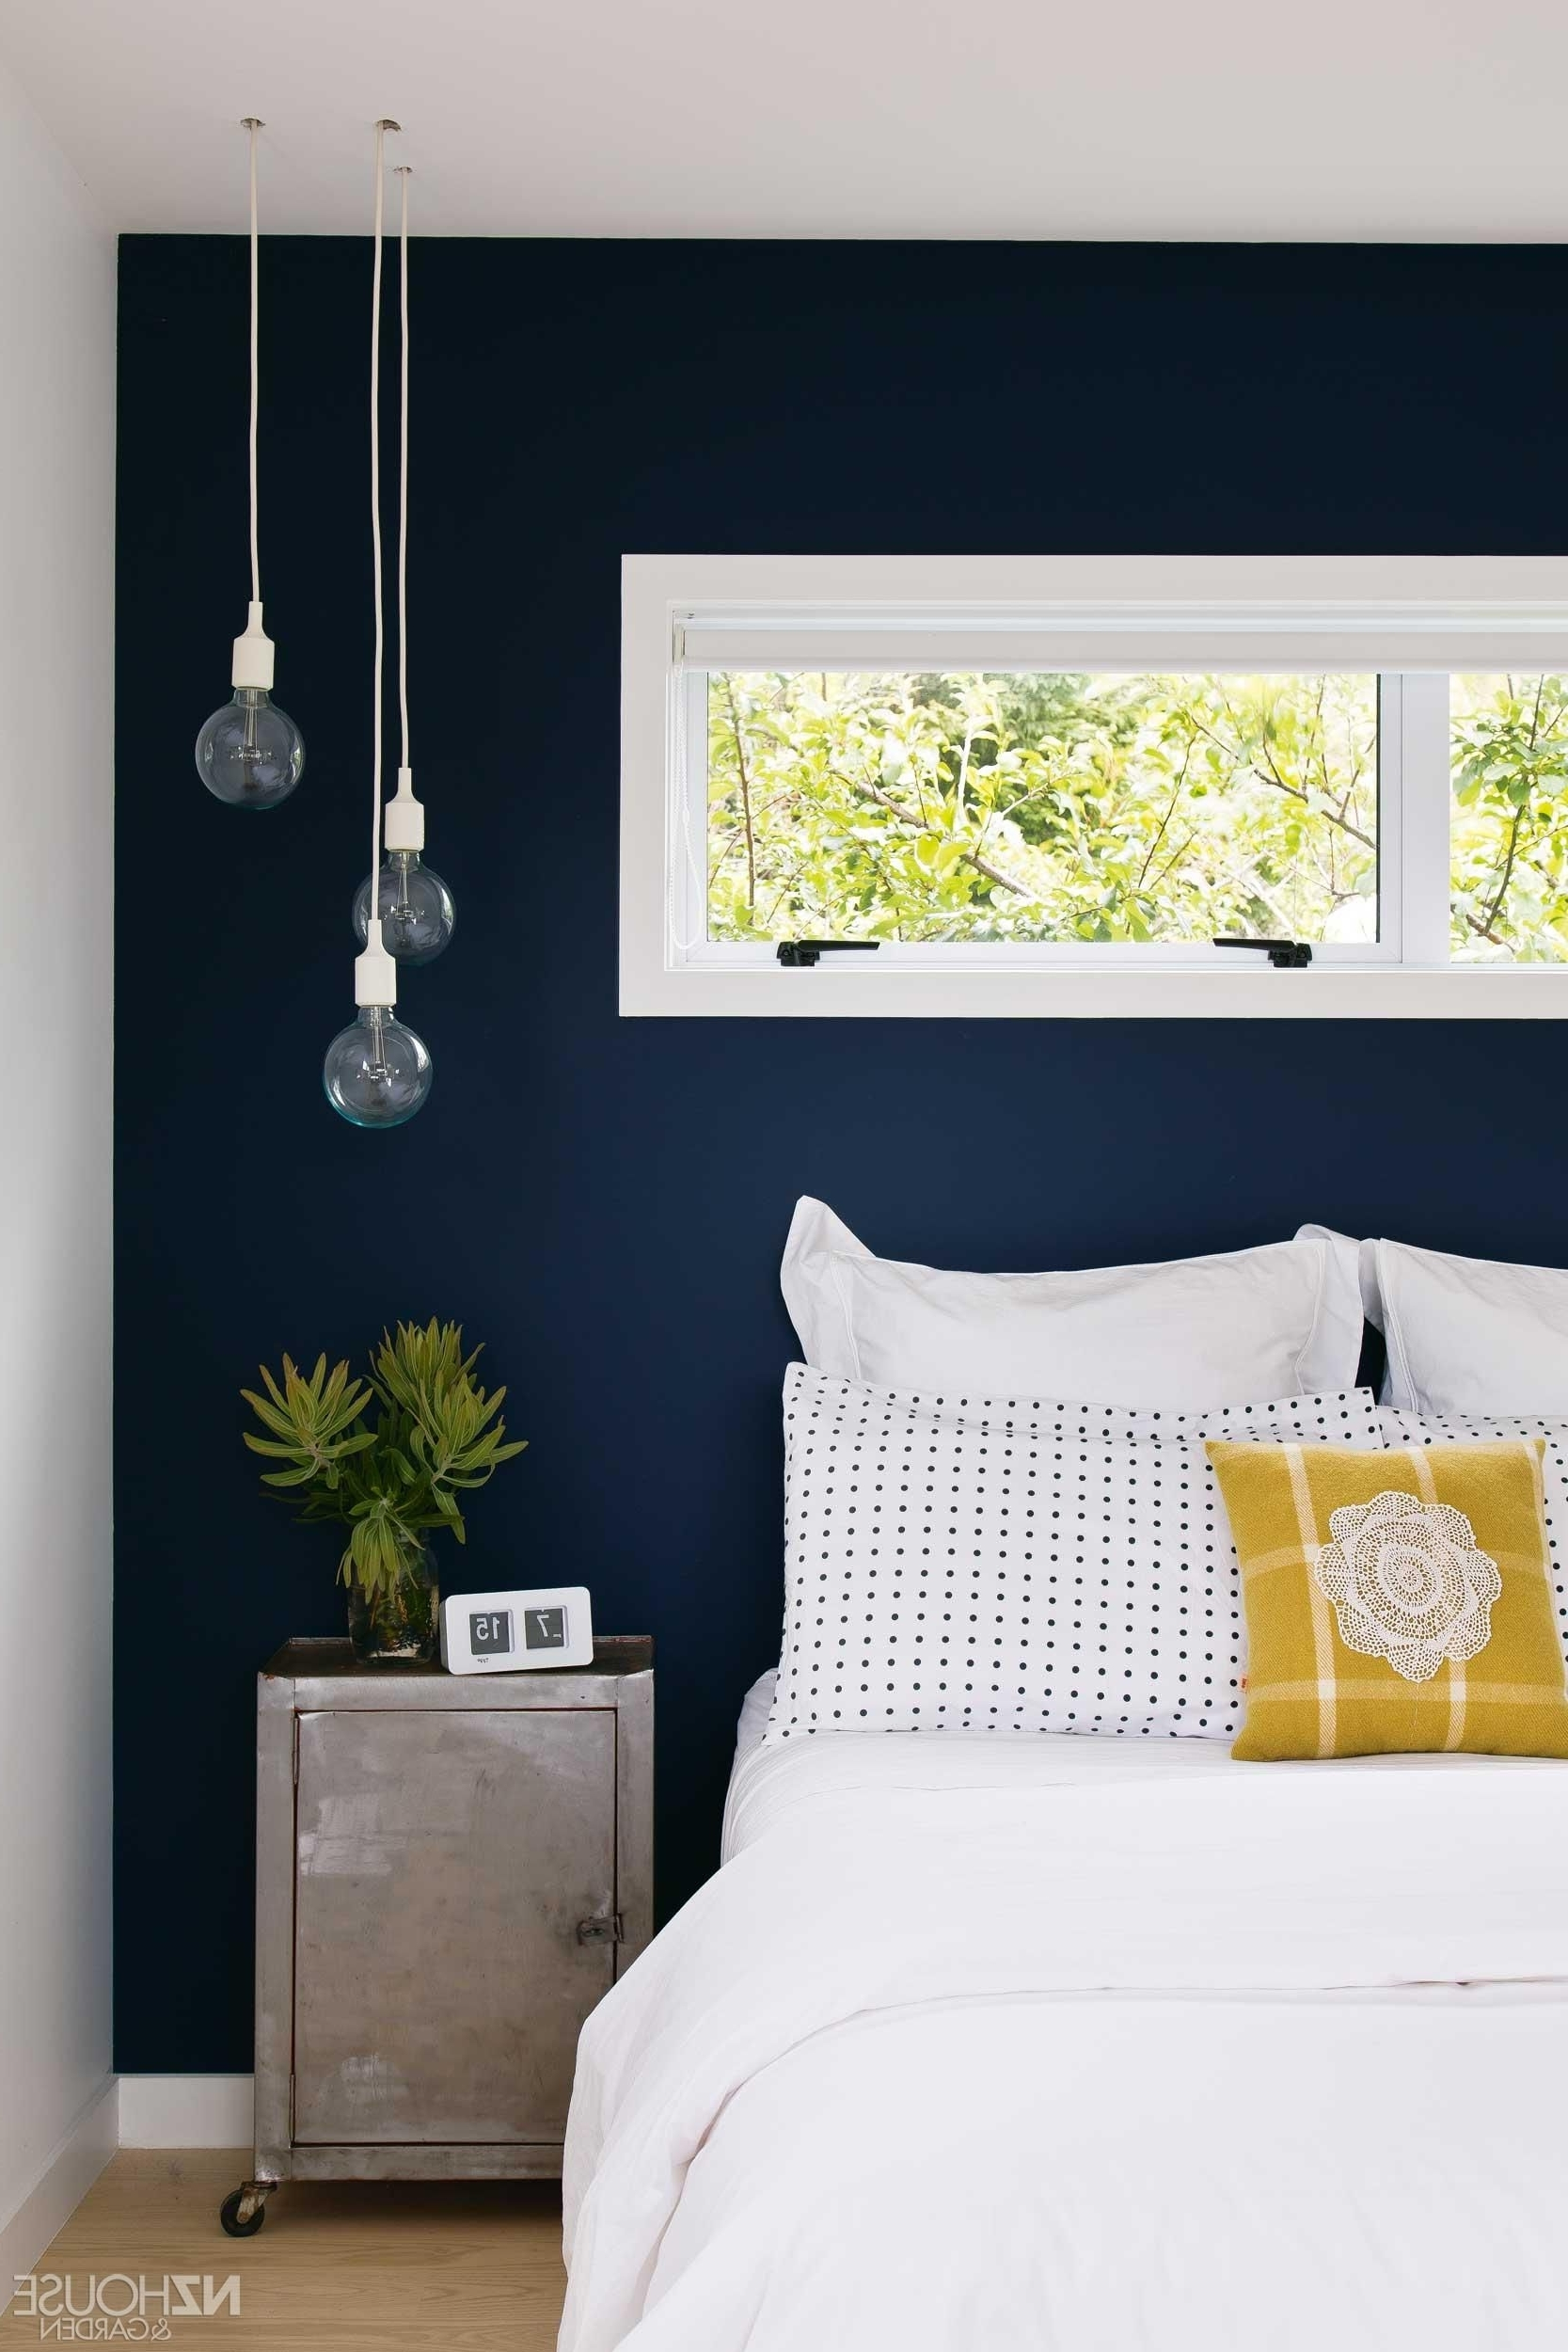 20+ Accent Wall Ideas You'll Surely Wish To Try This At Home Regarding Most Recent Wall Accents For Yellow Room (Gallery 7 of 15)